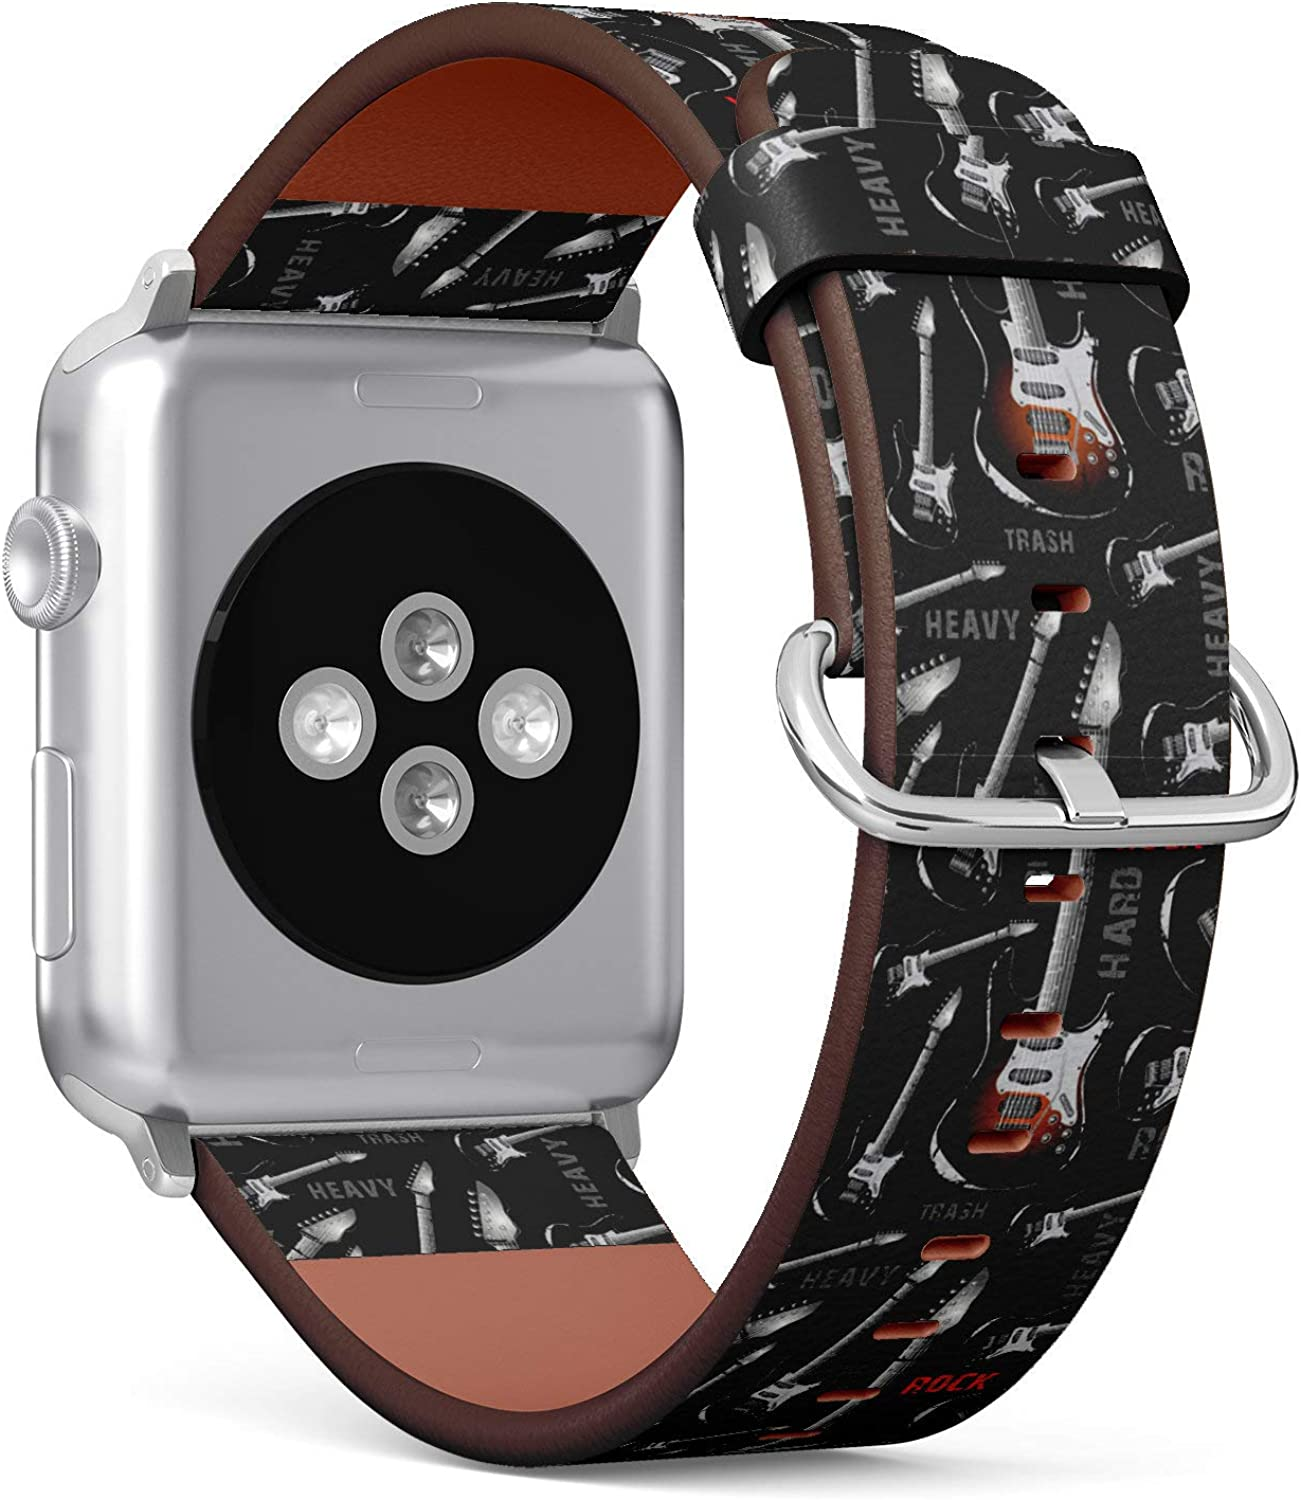 (Rock Guitar Background) Patterned Leather Wristband Strap Compatible with Apple Watch Series 4/3/2/1 gen,Replacement of iWatch 38mm / 40mm Bands